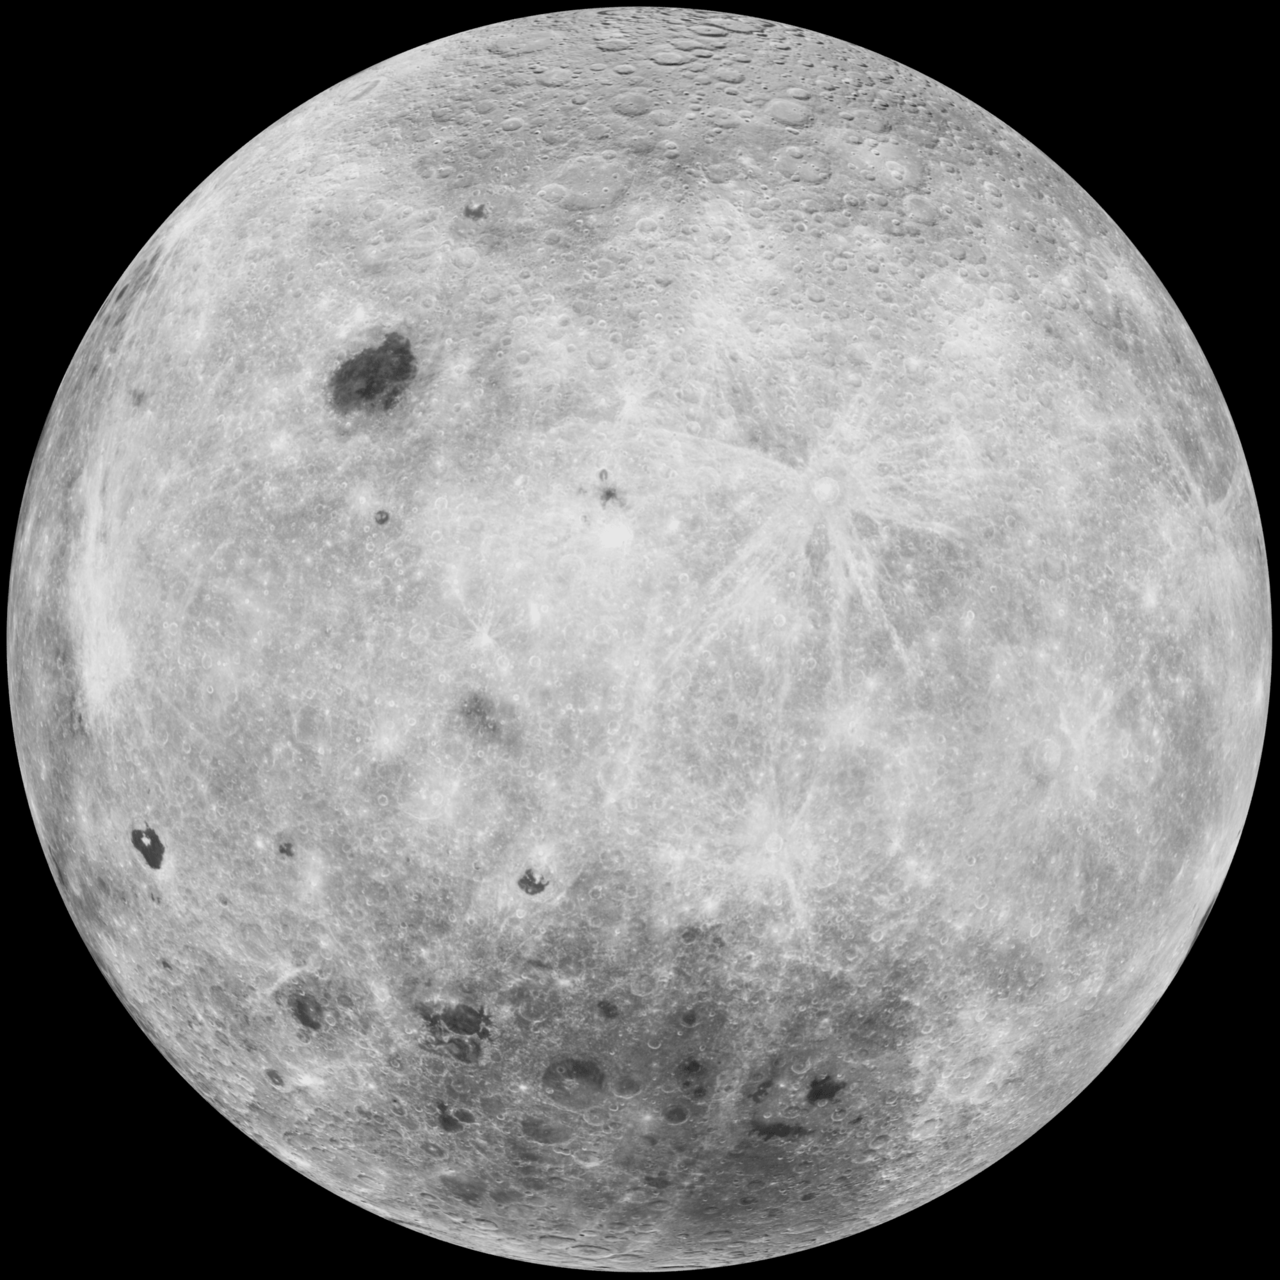 Moon_back-view_(Clementine,_cropped).png